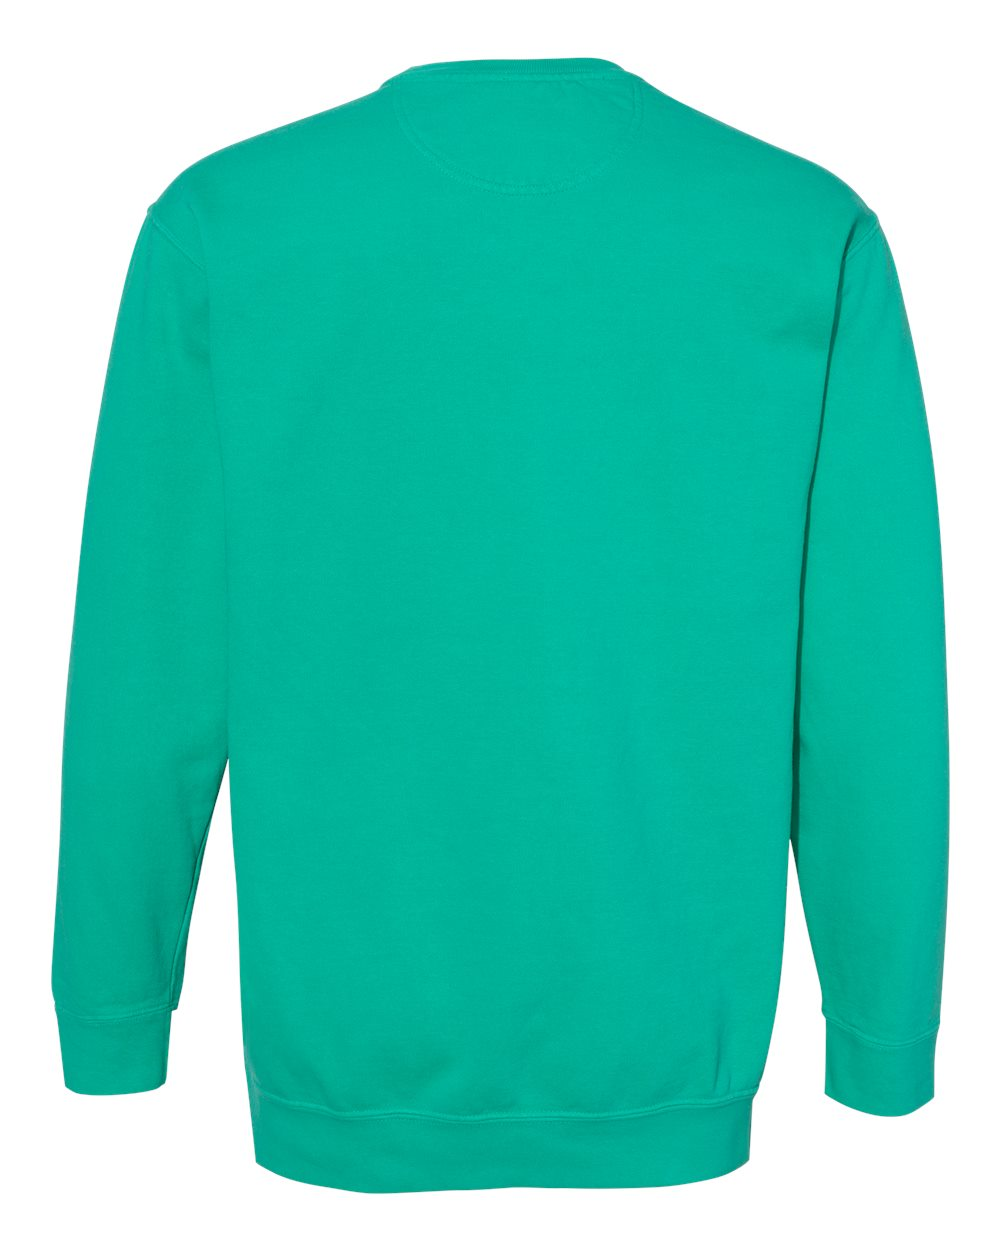 Comfort-Colors-Mens-Garment-Dyed-Ringspun-Crewneck-Sweatshirt-1566-up-to-3XL miniature 40